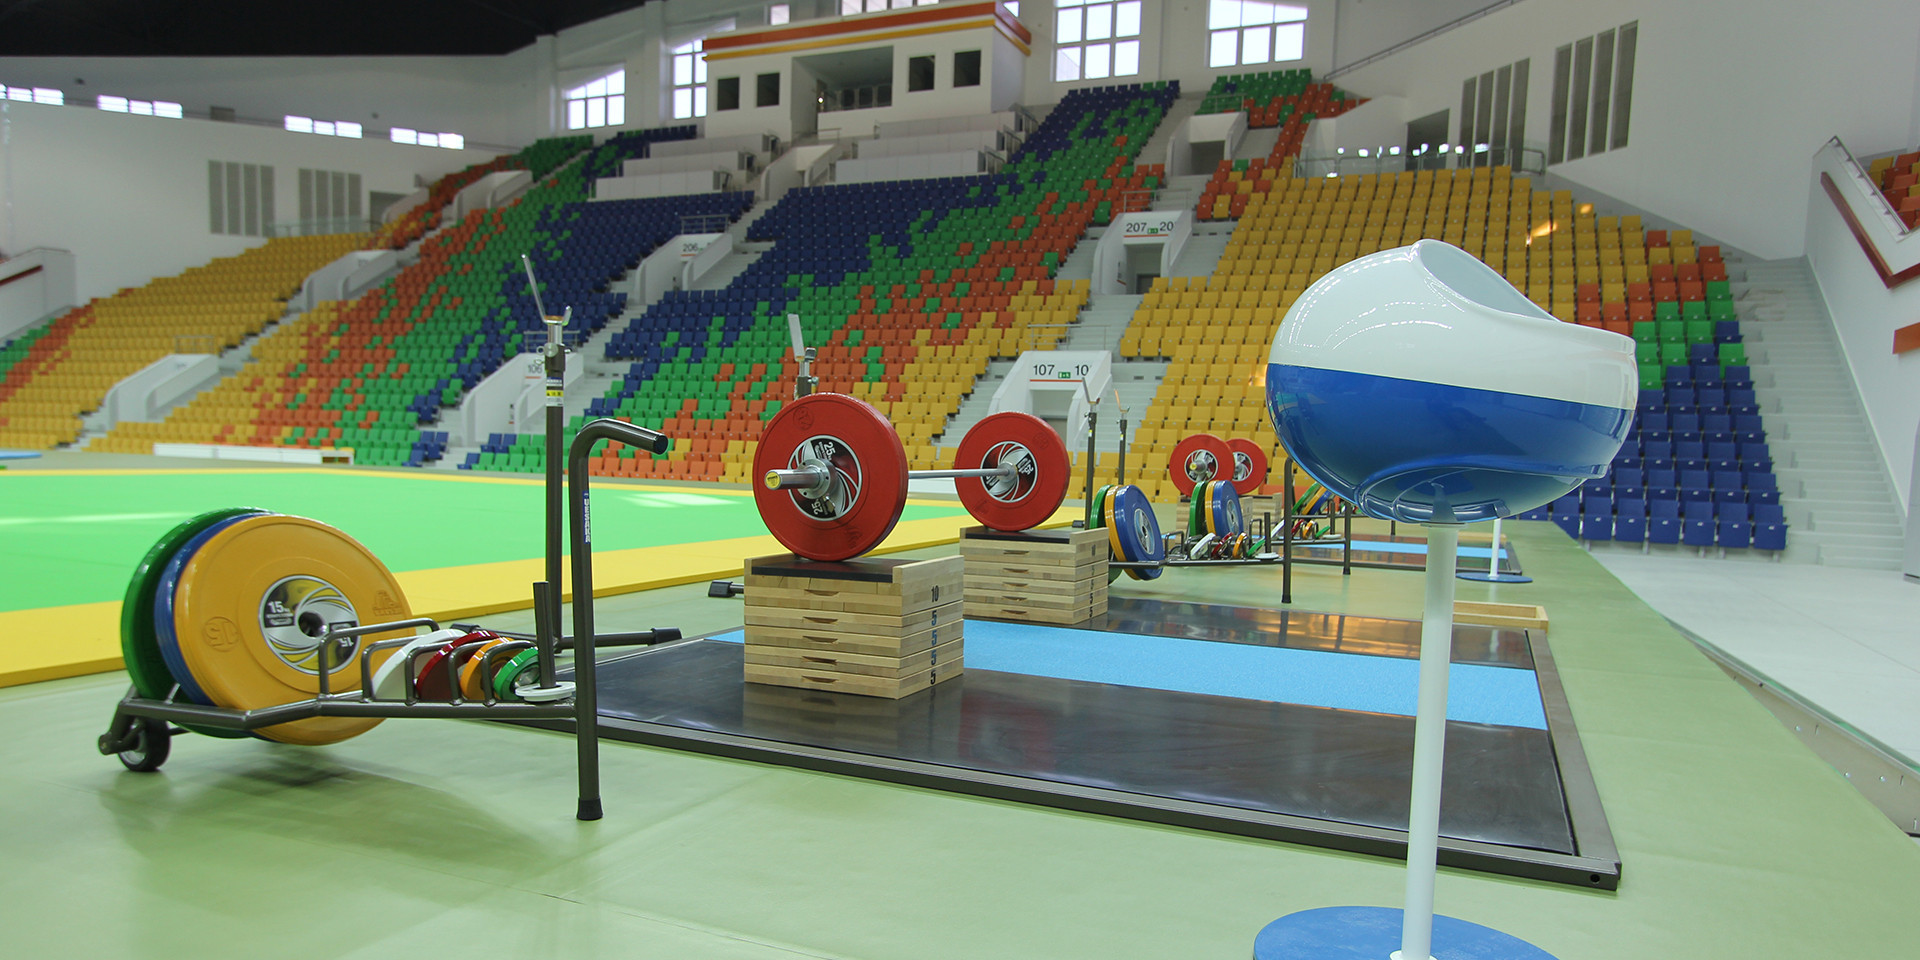 Ashgabat 2017 weightlifting action continued today at the Arena dedicated to the sport ©Ashgabat 2017